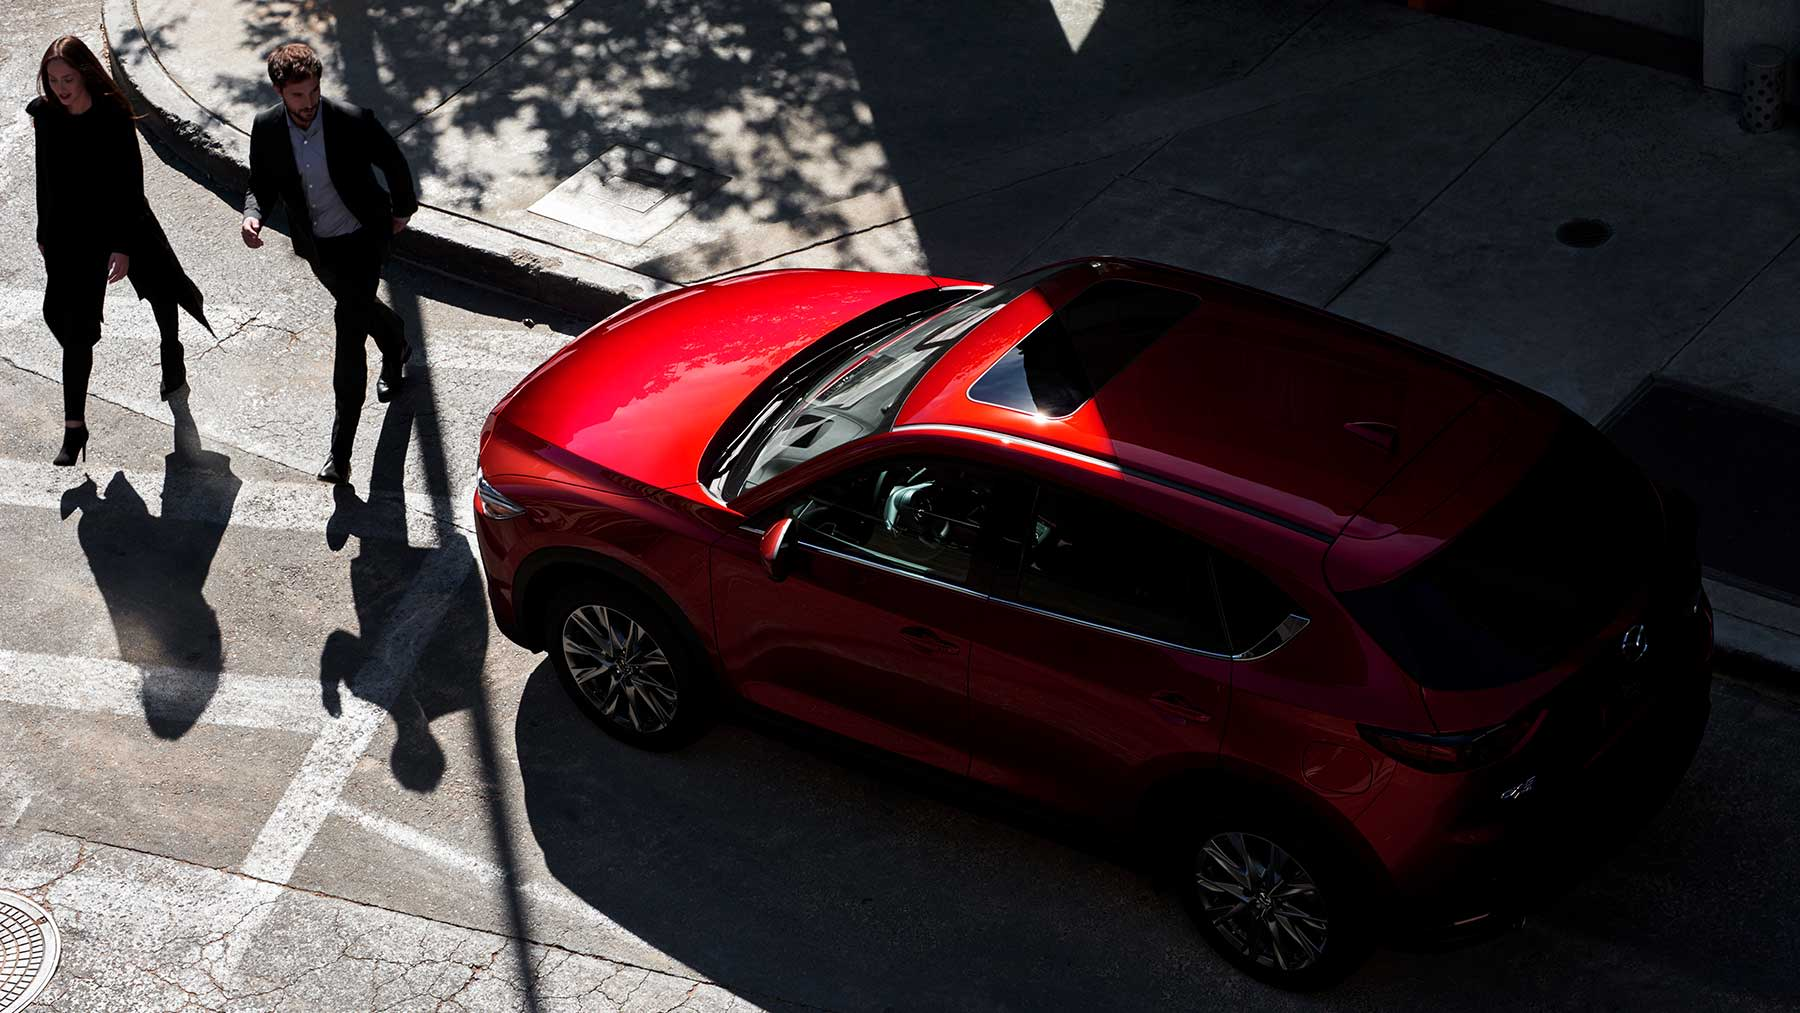 Onlookers Will Stare at Your Mazda's Beautiful Color!